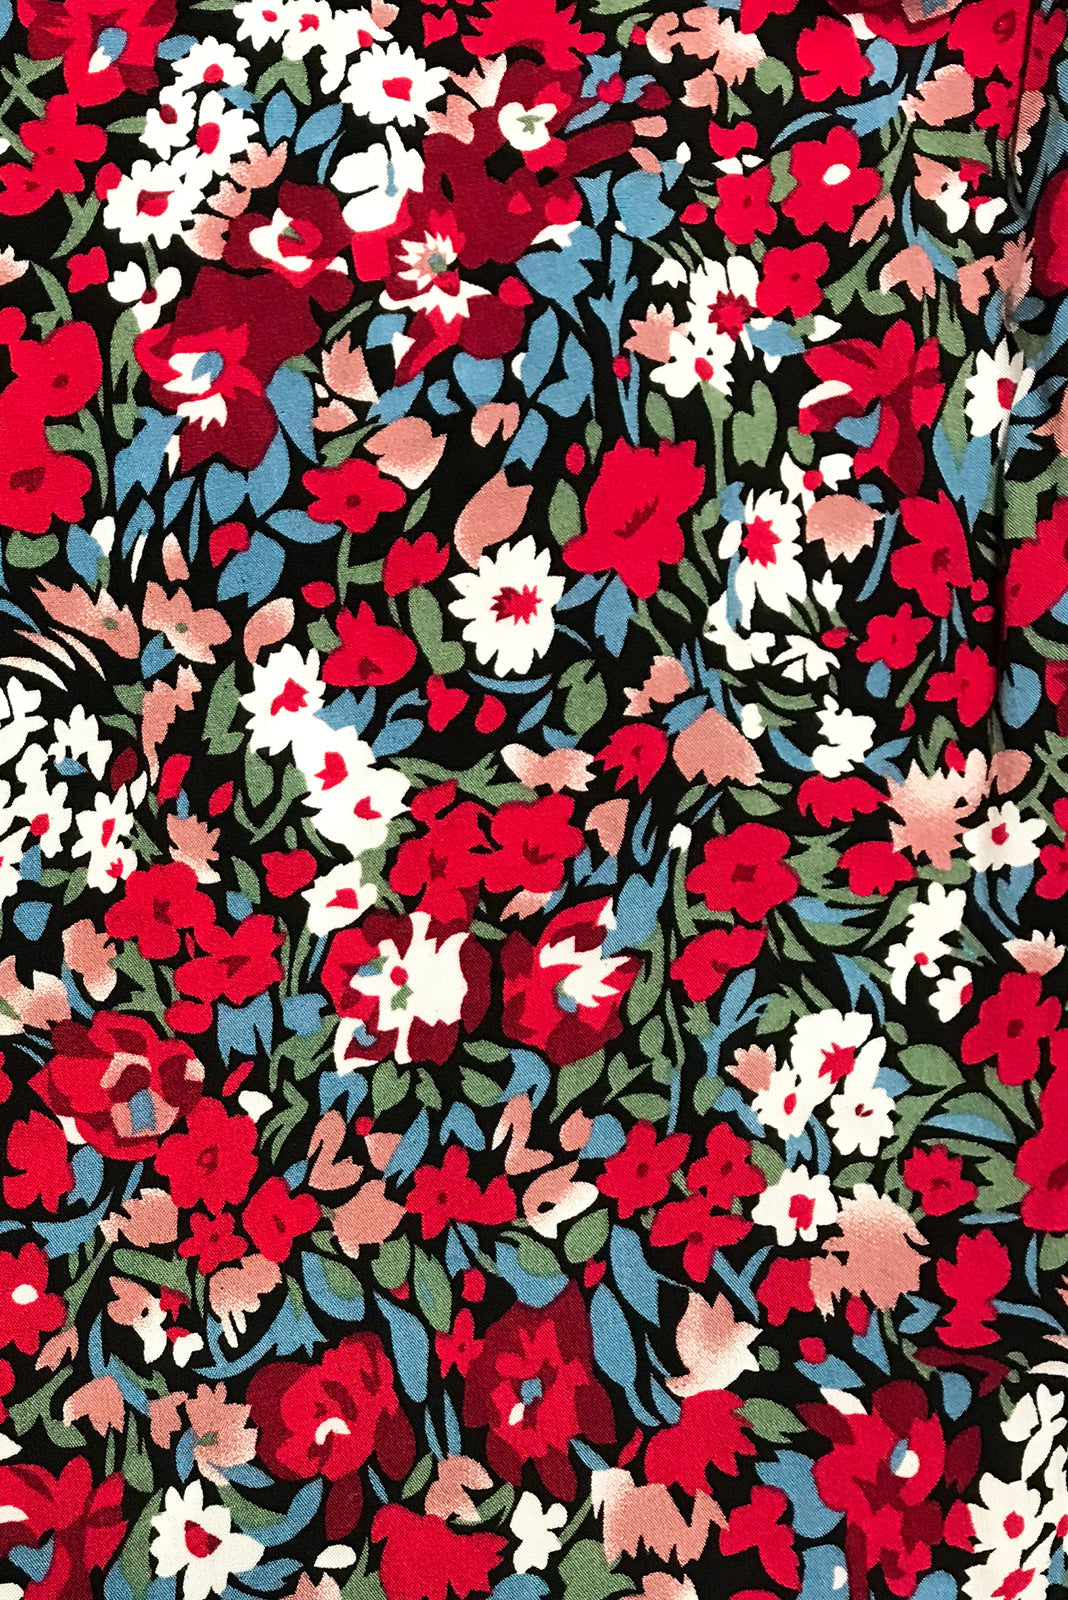 Fabric swatch of Henrietta Red Yves Dress featuring woven 100% rayon in black base with a confetti floral print in red, pink, blue, green and white.